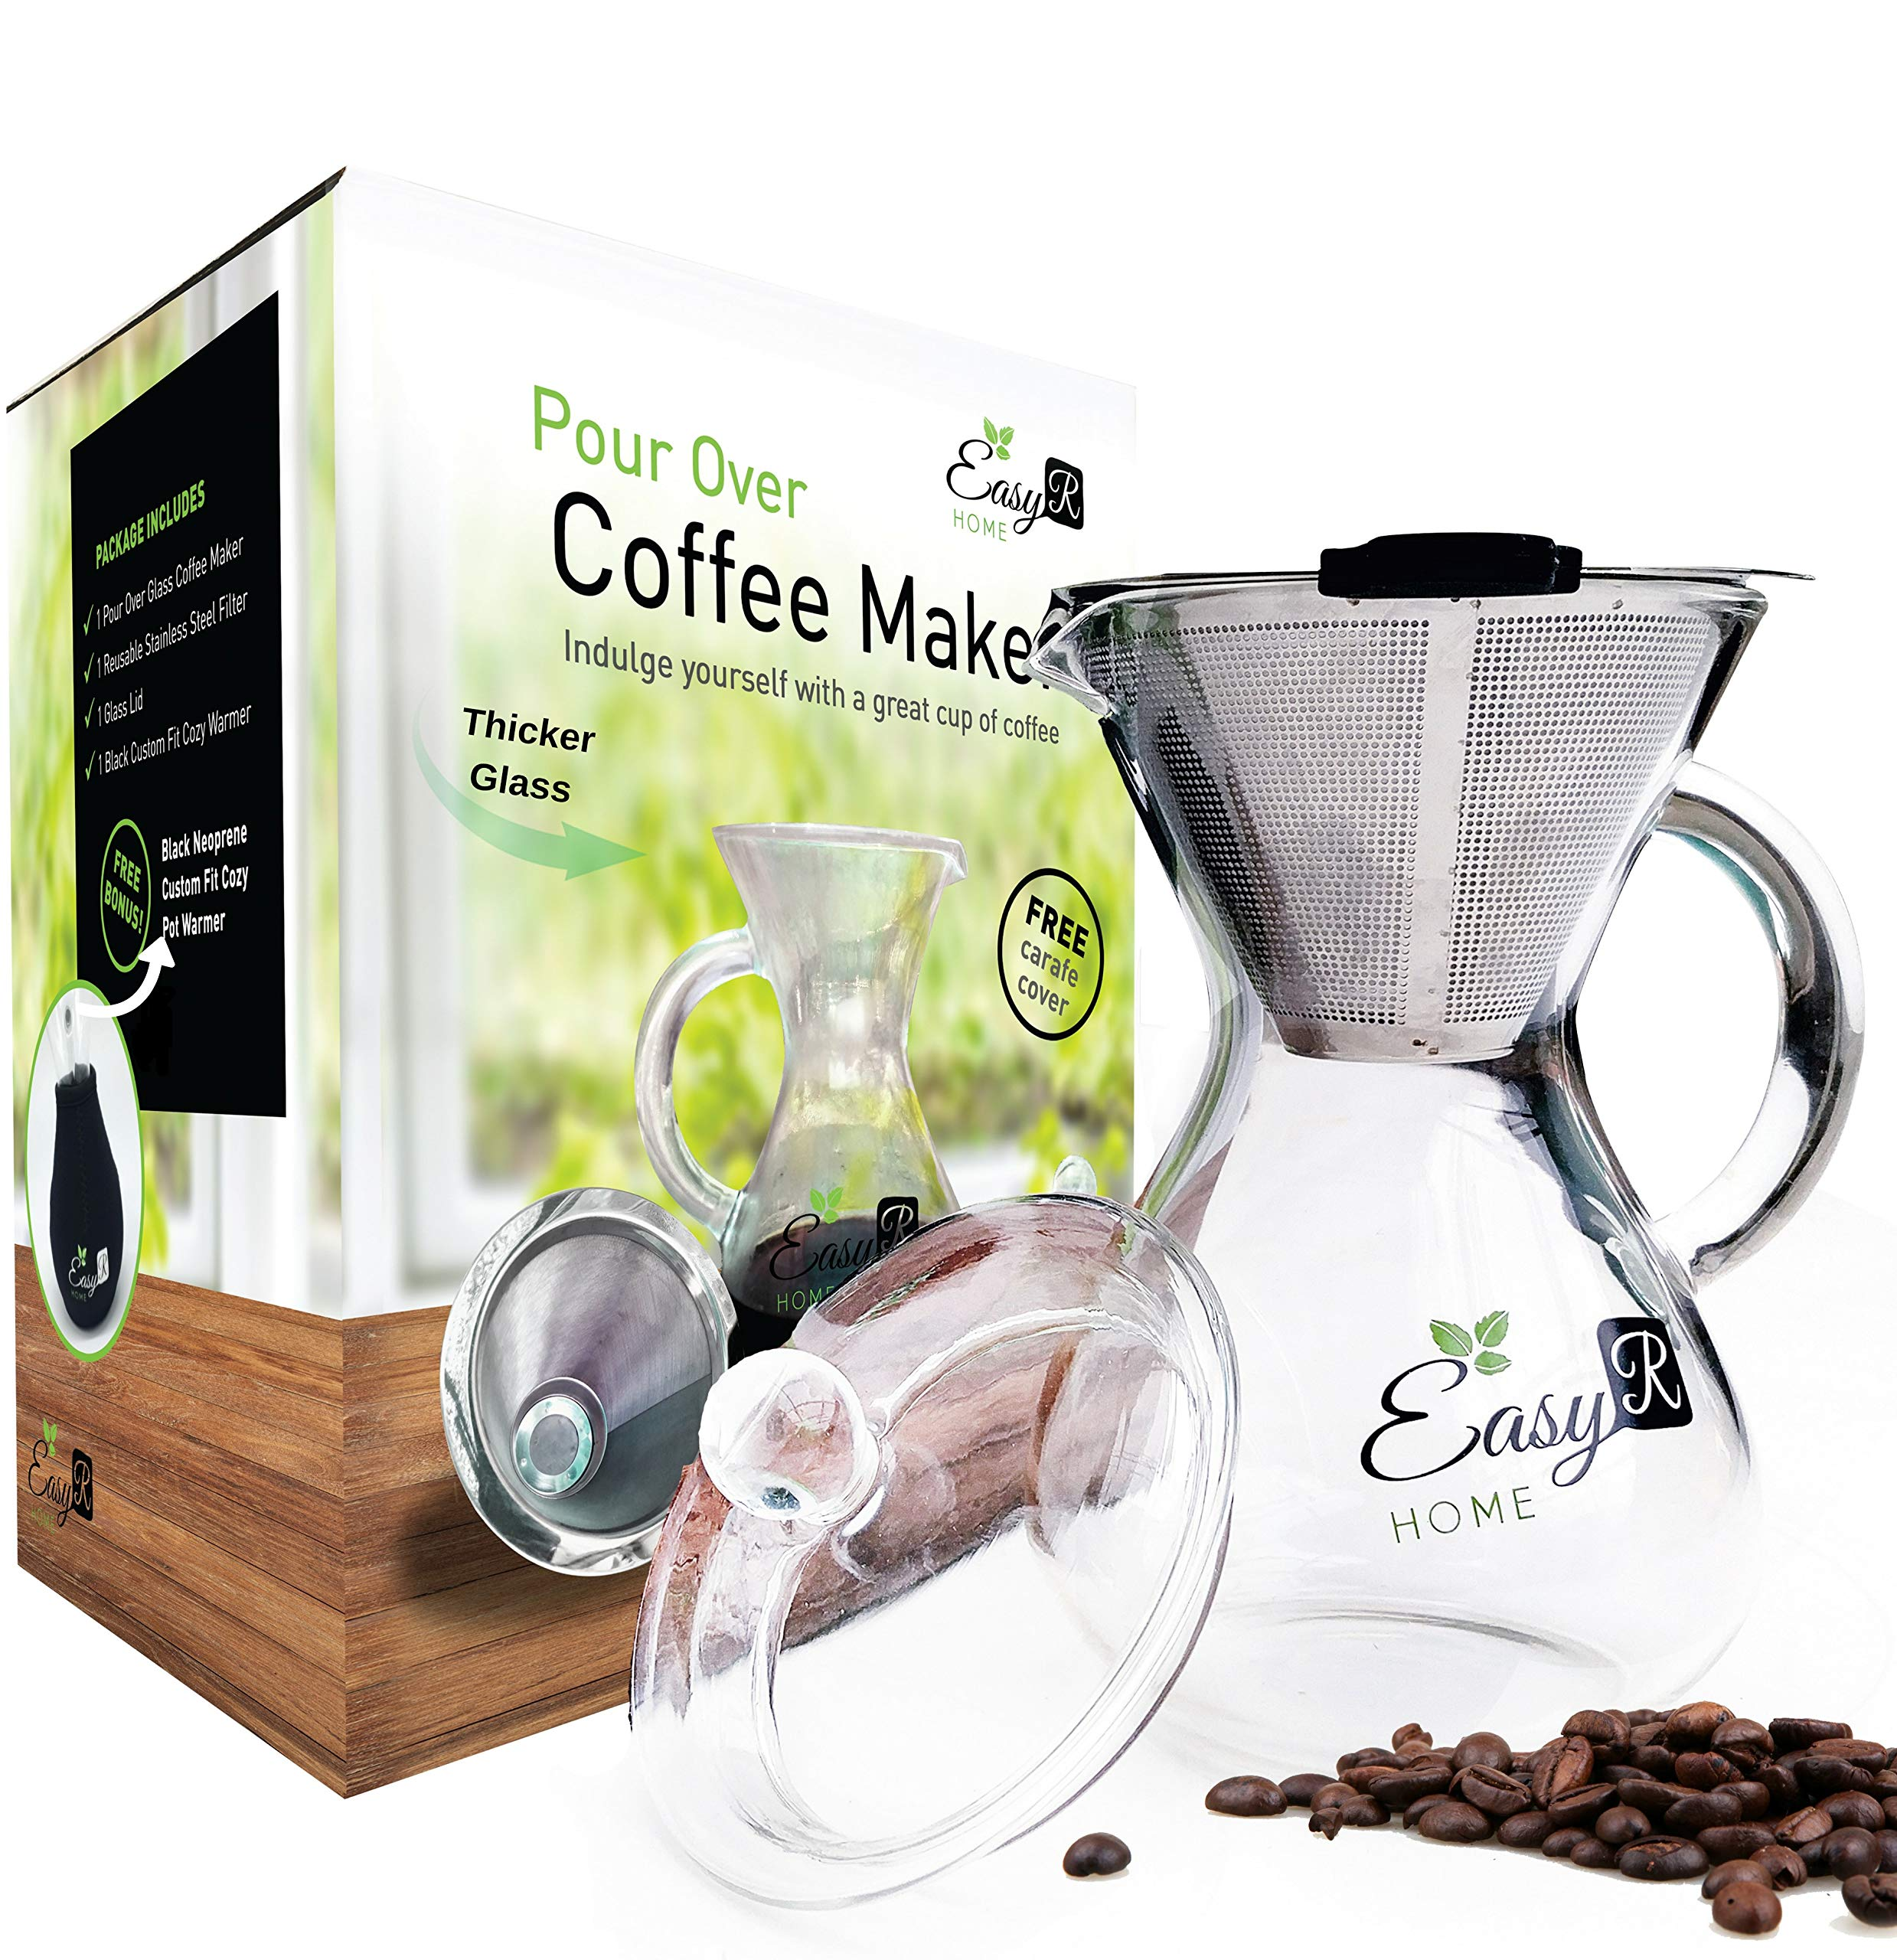 EasyR Home Pour Over Brewer - 14 oz Borosilicate Glass Personal Coffee Maker with Reusable Paperless Stainless Steel Filter/Dripper, Glass Lid and Free Carafe Warmer to Keep Coffee Hot by EasyR Home